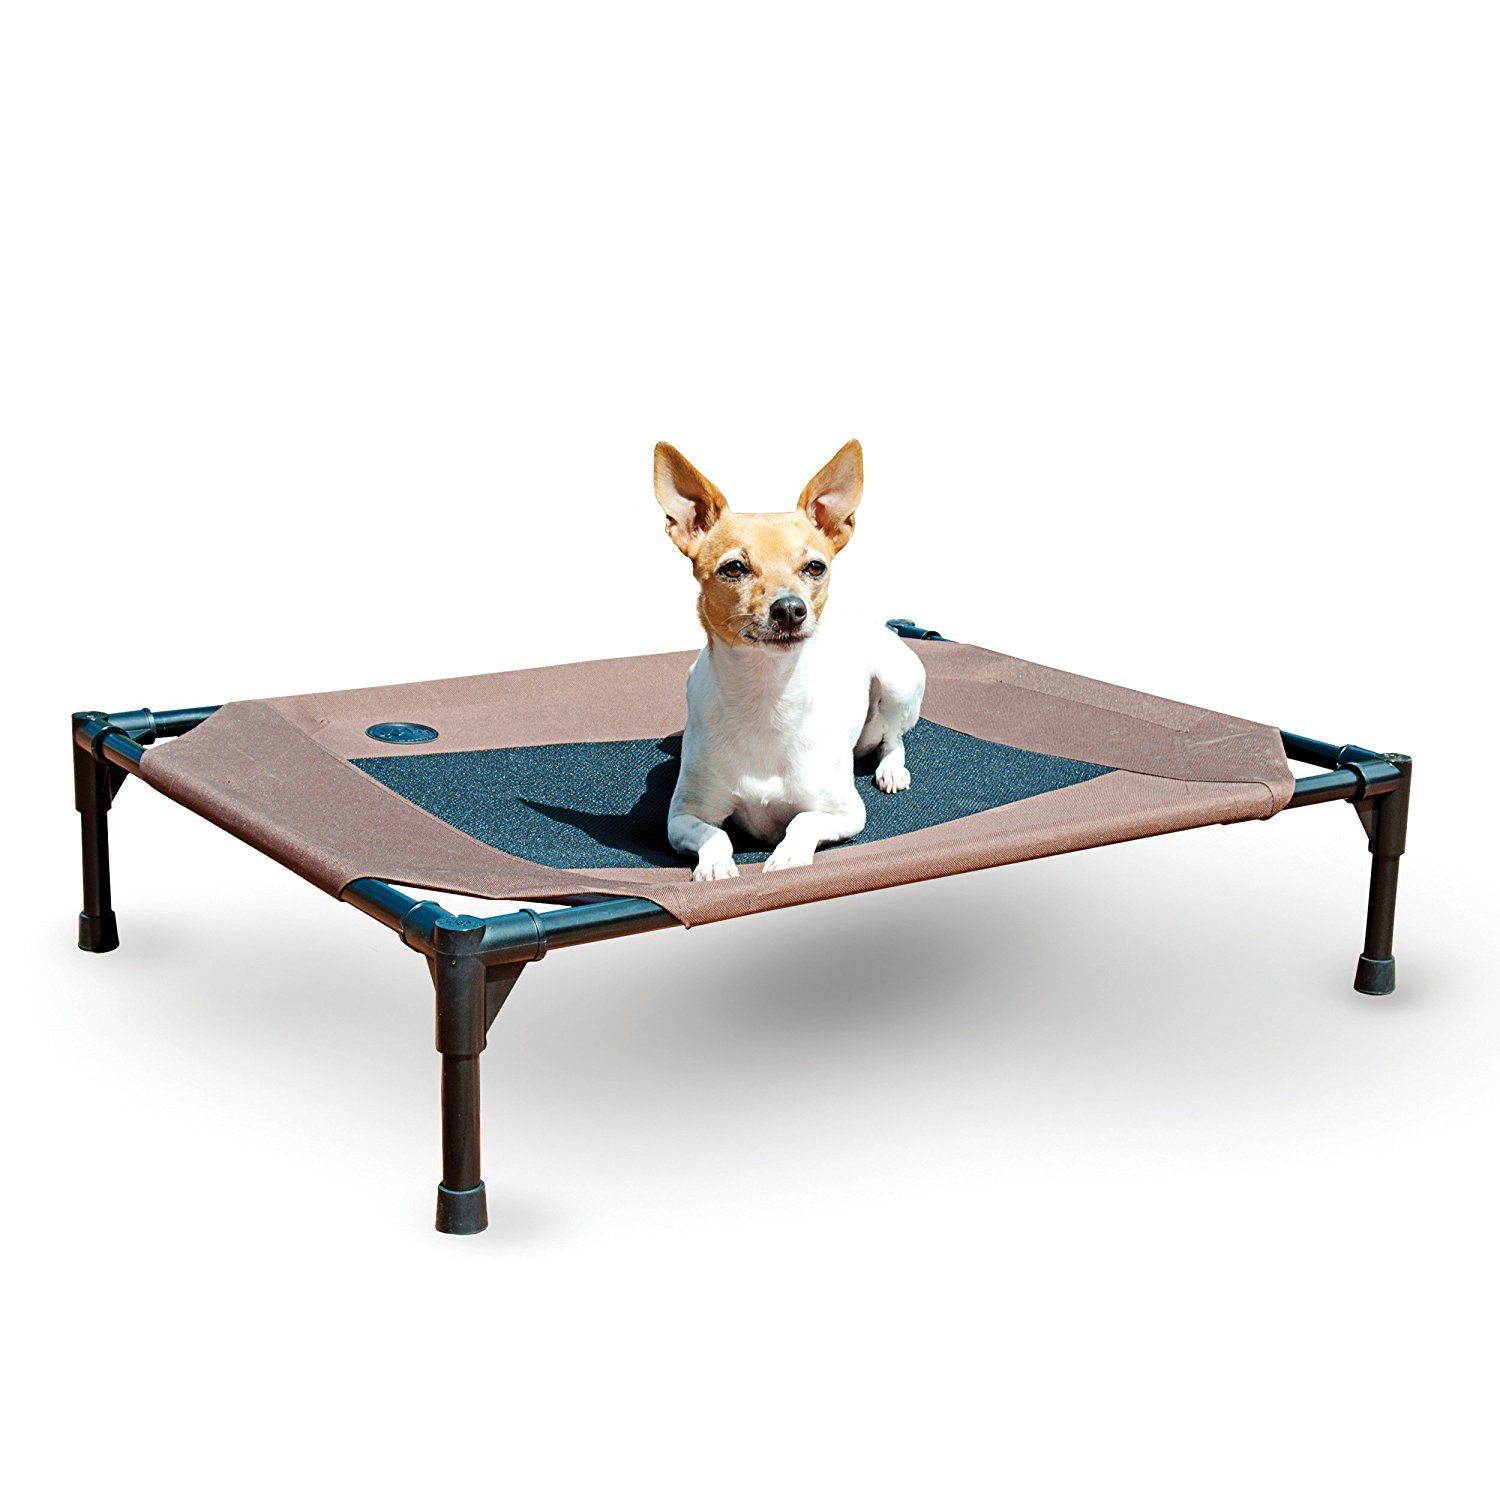 Dog Beds That Sit Off The Floor Canada. Waterproof